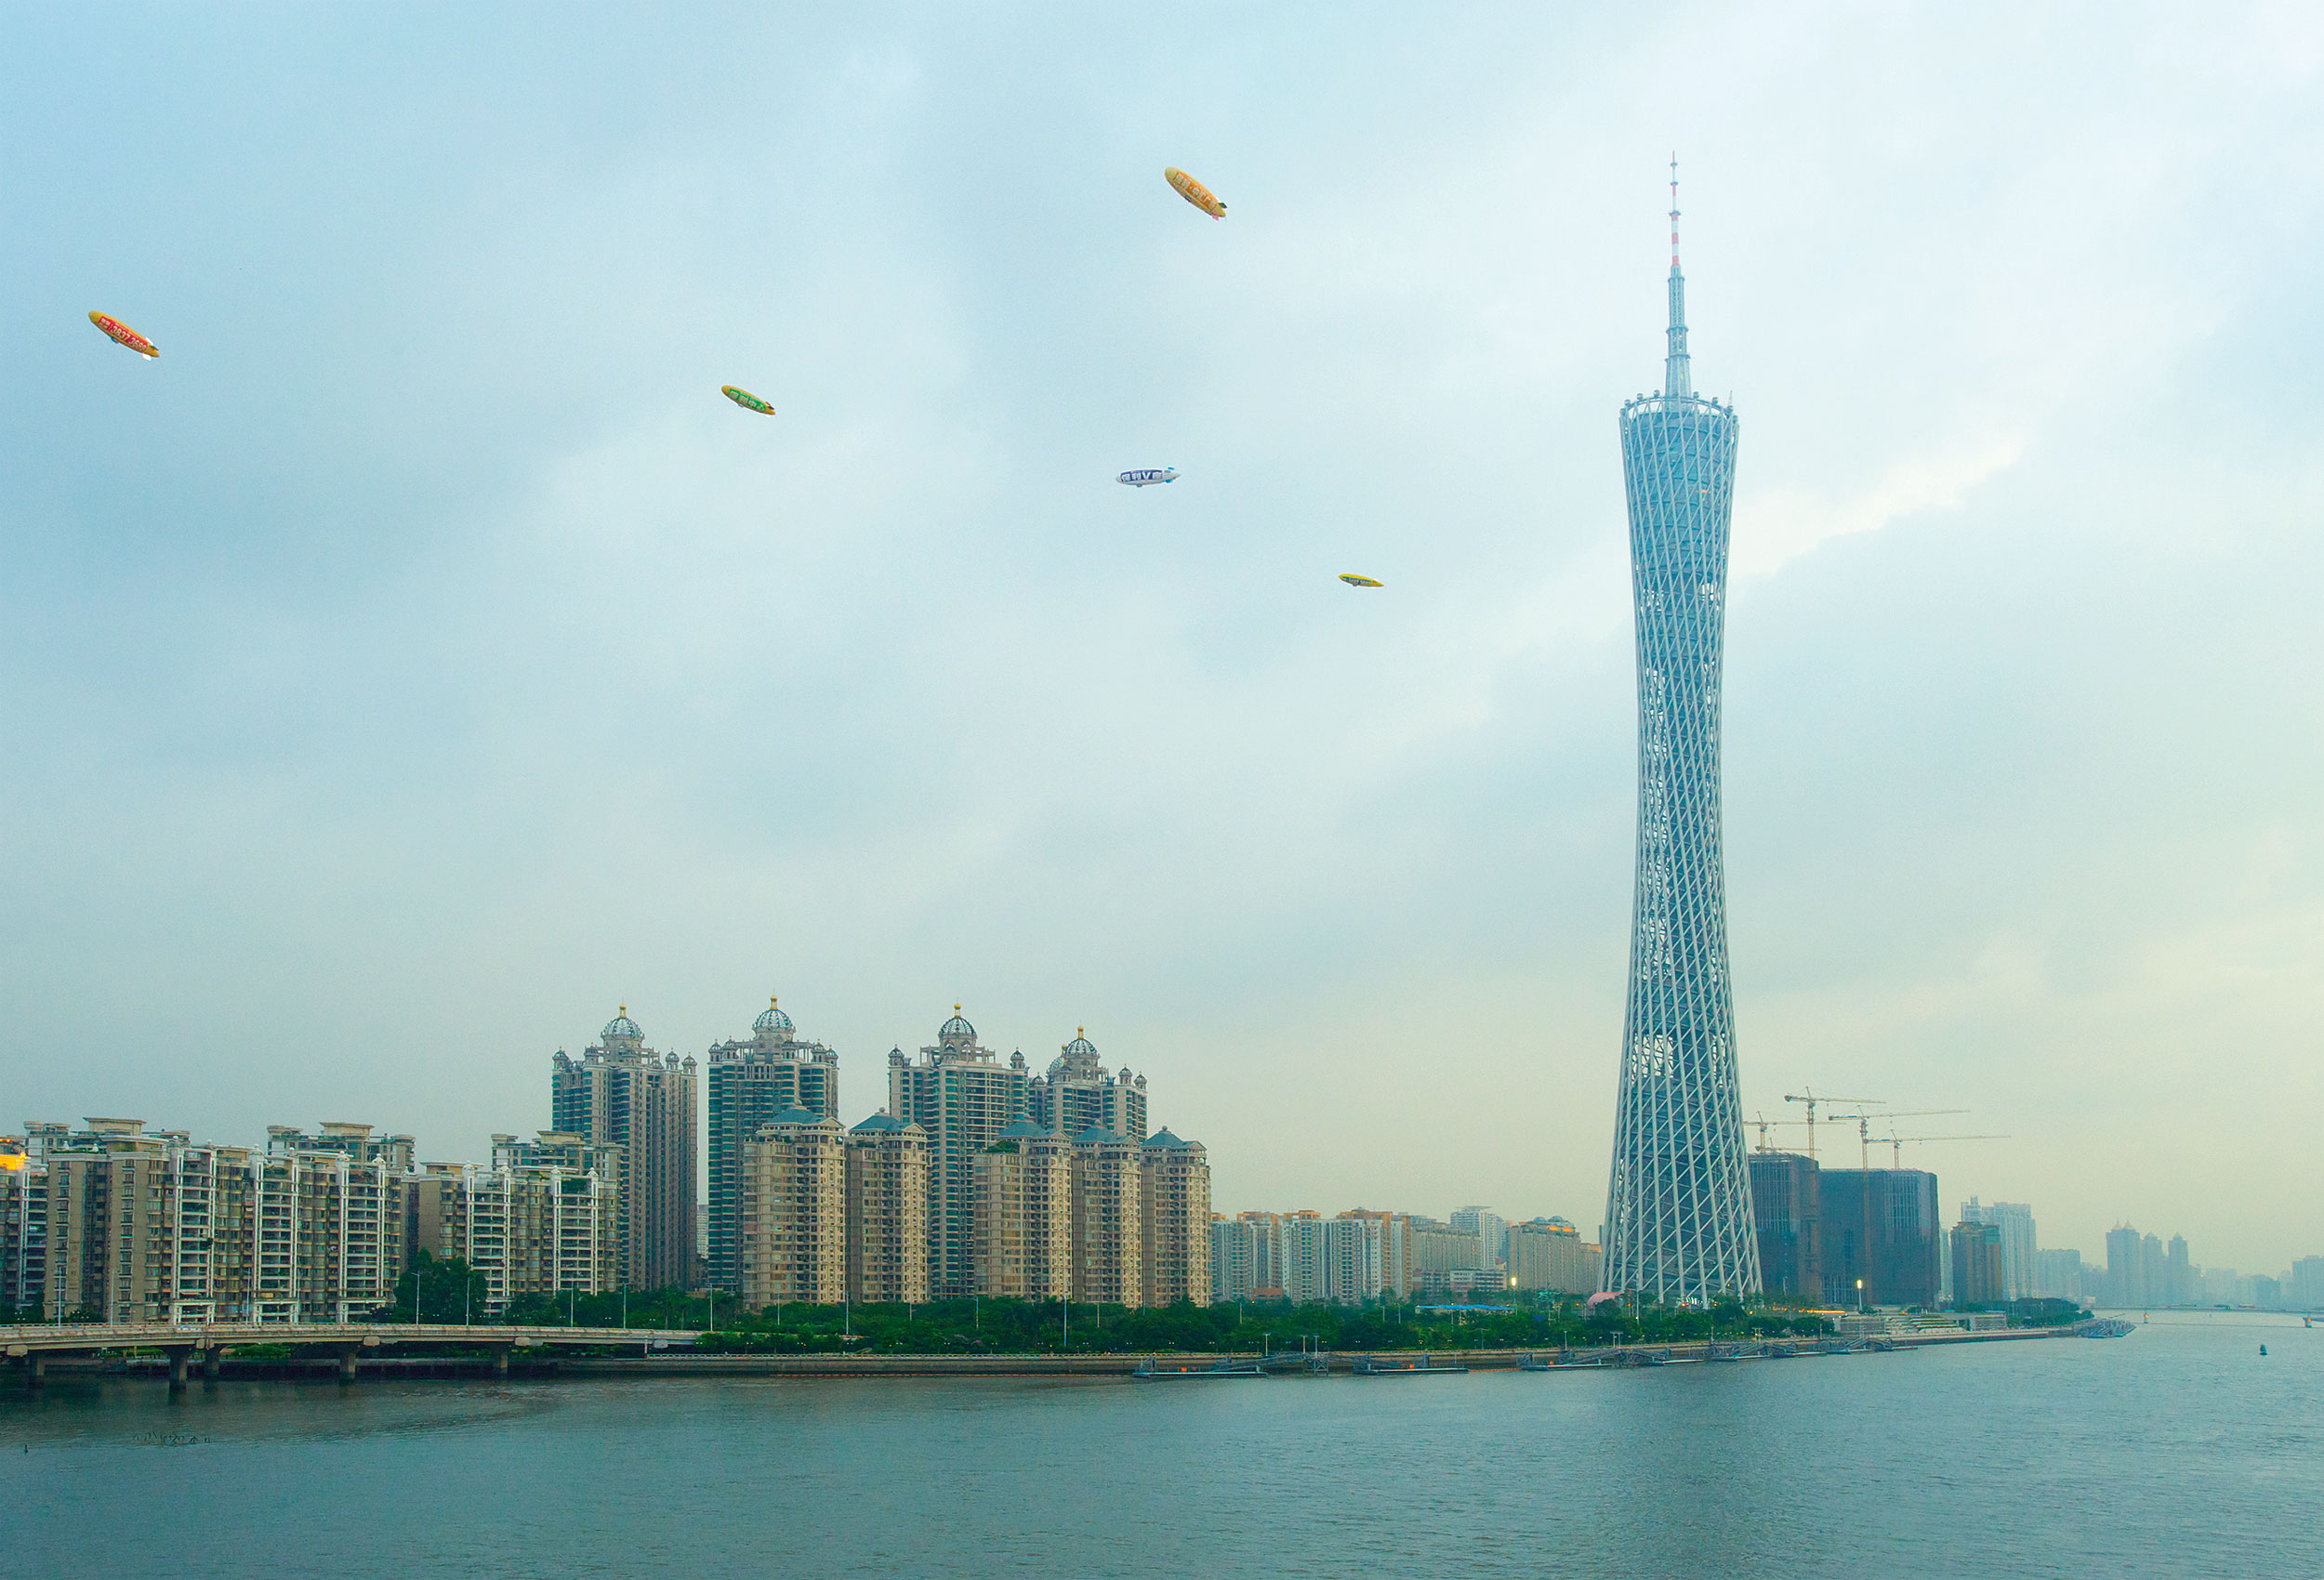 Canton Tower by architectural cityscape photographer Kristopher Grunert